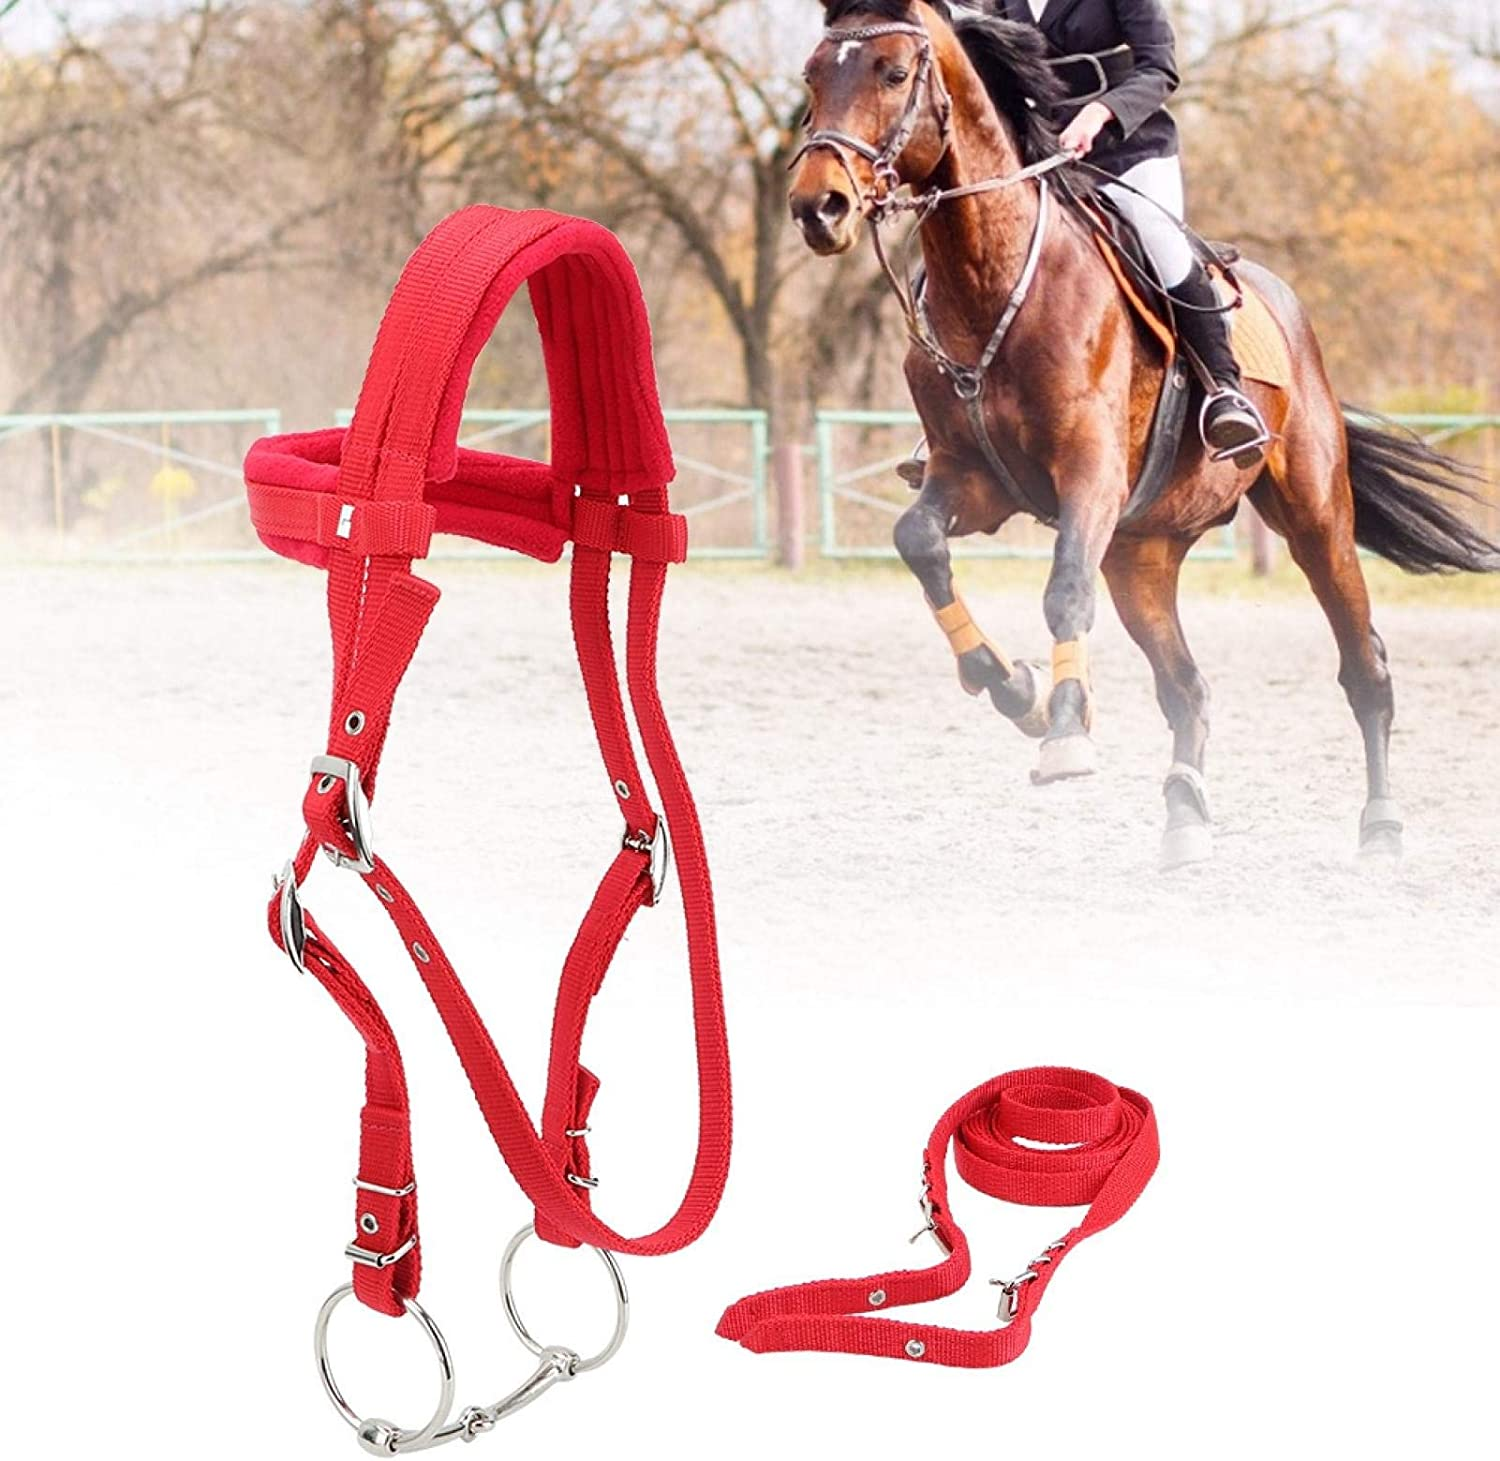 SALUTUYA Adjustable Horse Harness Durable Max 52% OFF i New popularity Removable Horses for